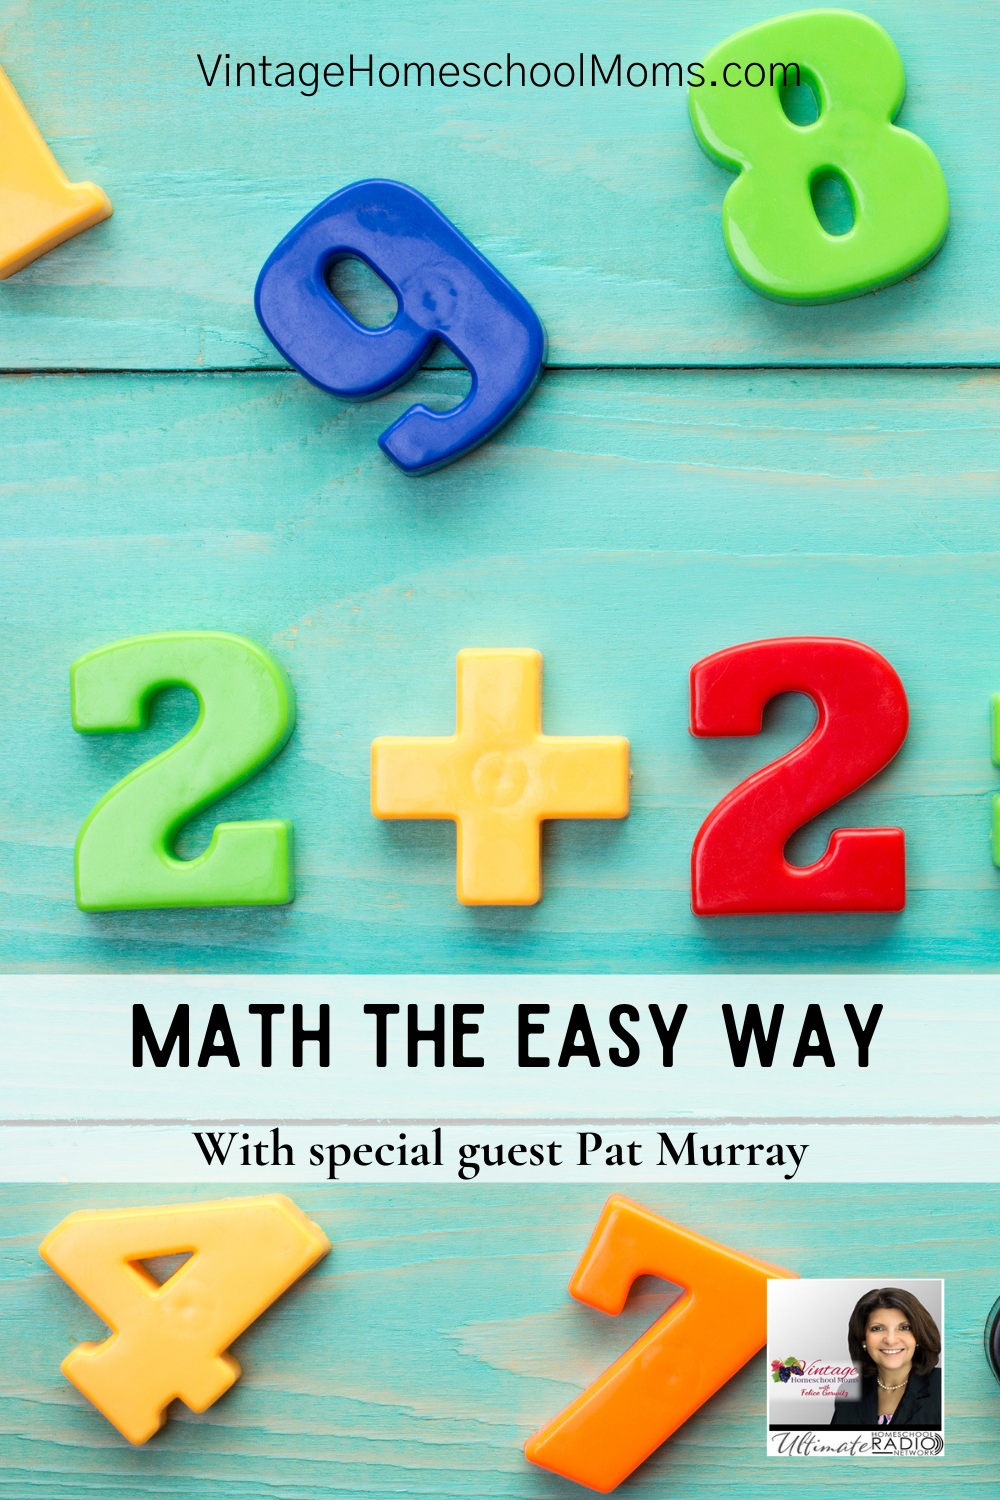 Are you ready for math the easy way? Enjoy my special guest Pat Murray – he's been a math teacher and coach for more than thirty-six years.